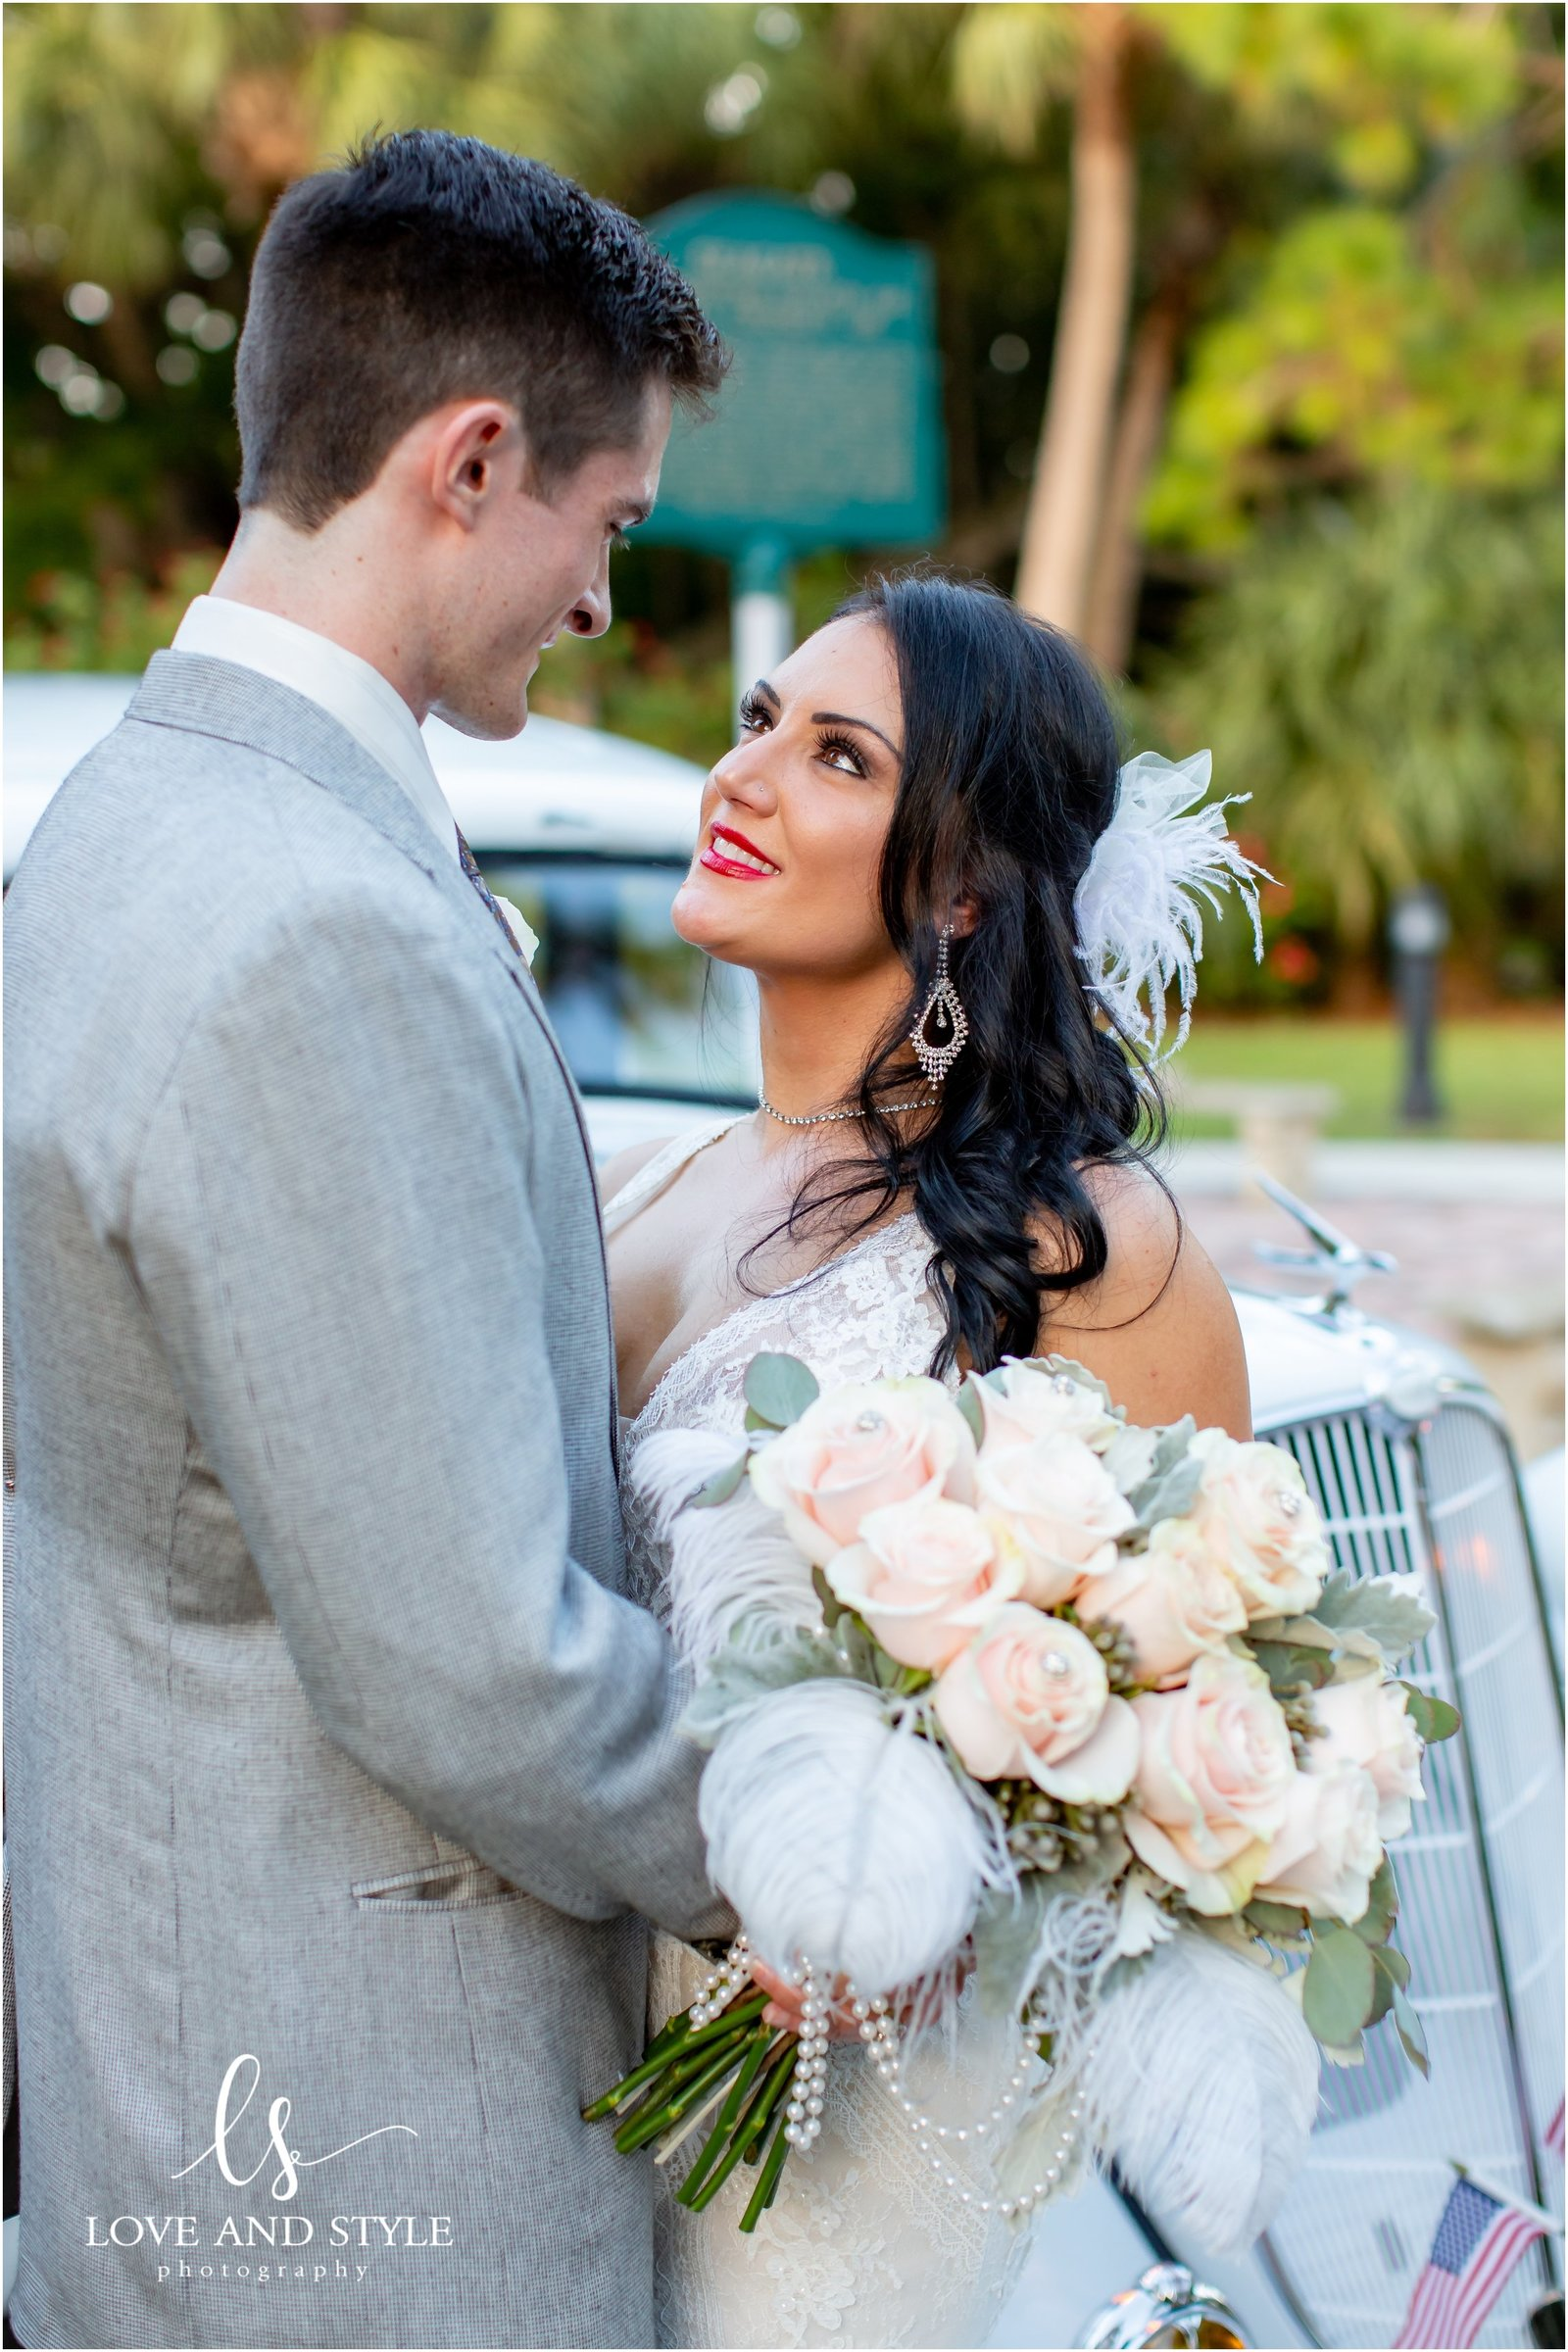 Bride and groom at The Powel Crosley Estate in Sarasota, Florida